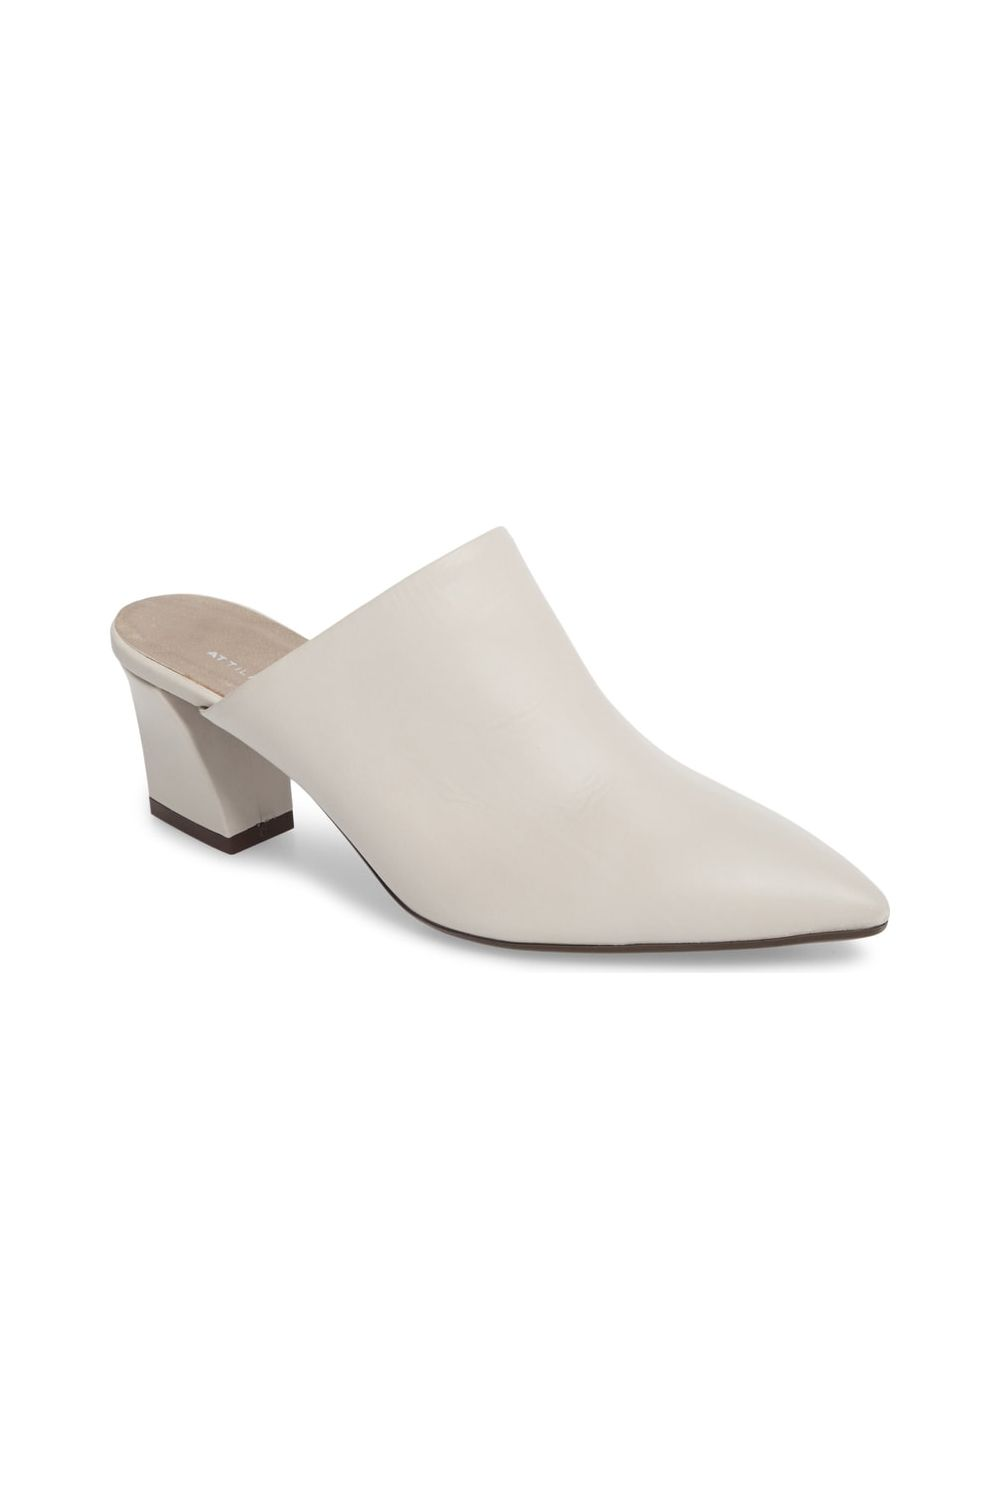 Nordstrom Anniversary 2018 Sale Best Deals What To Buy At Flash  Olivia Sneakers Ivory 40 July